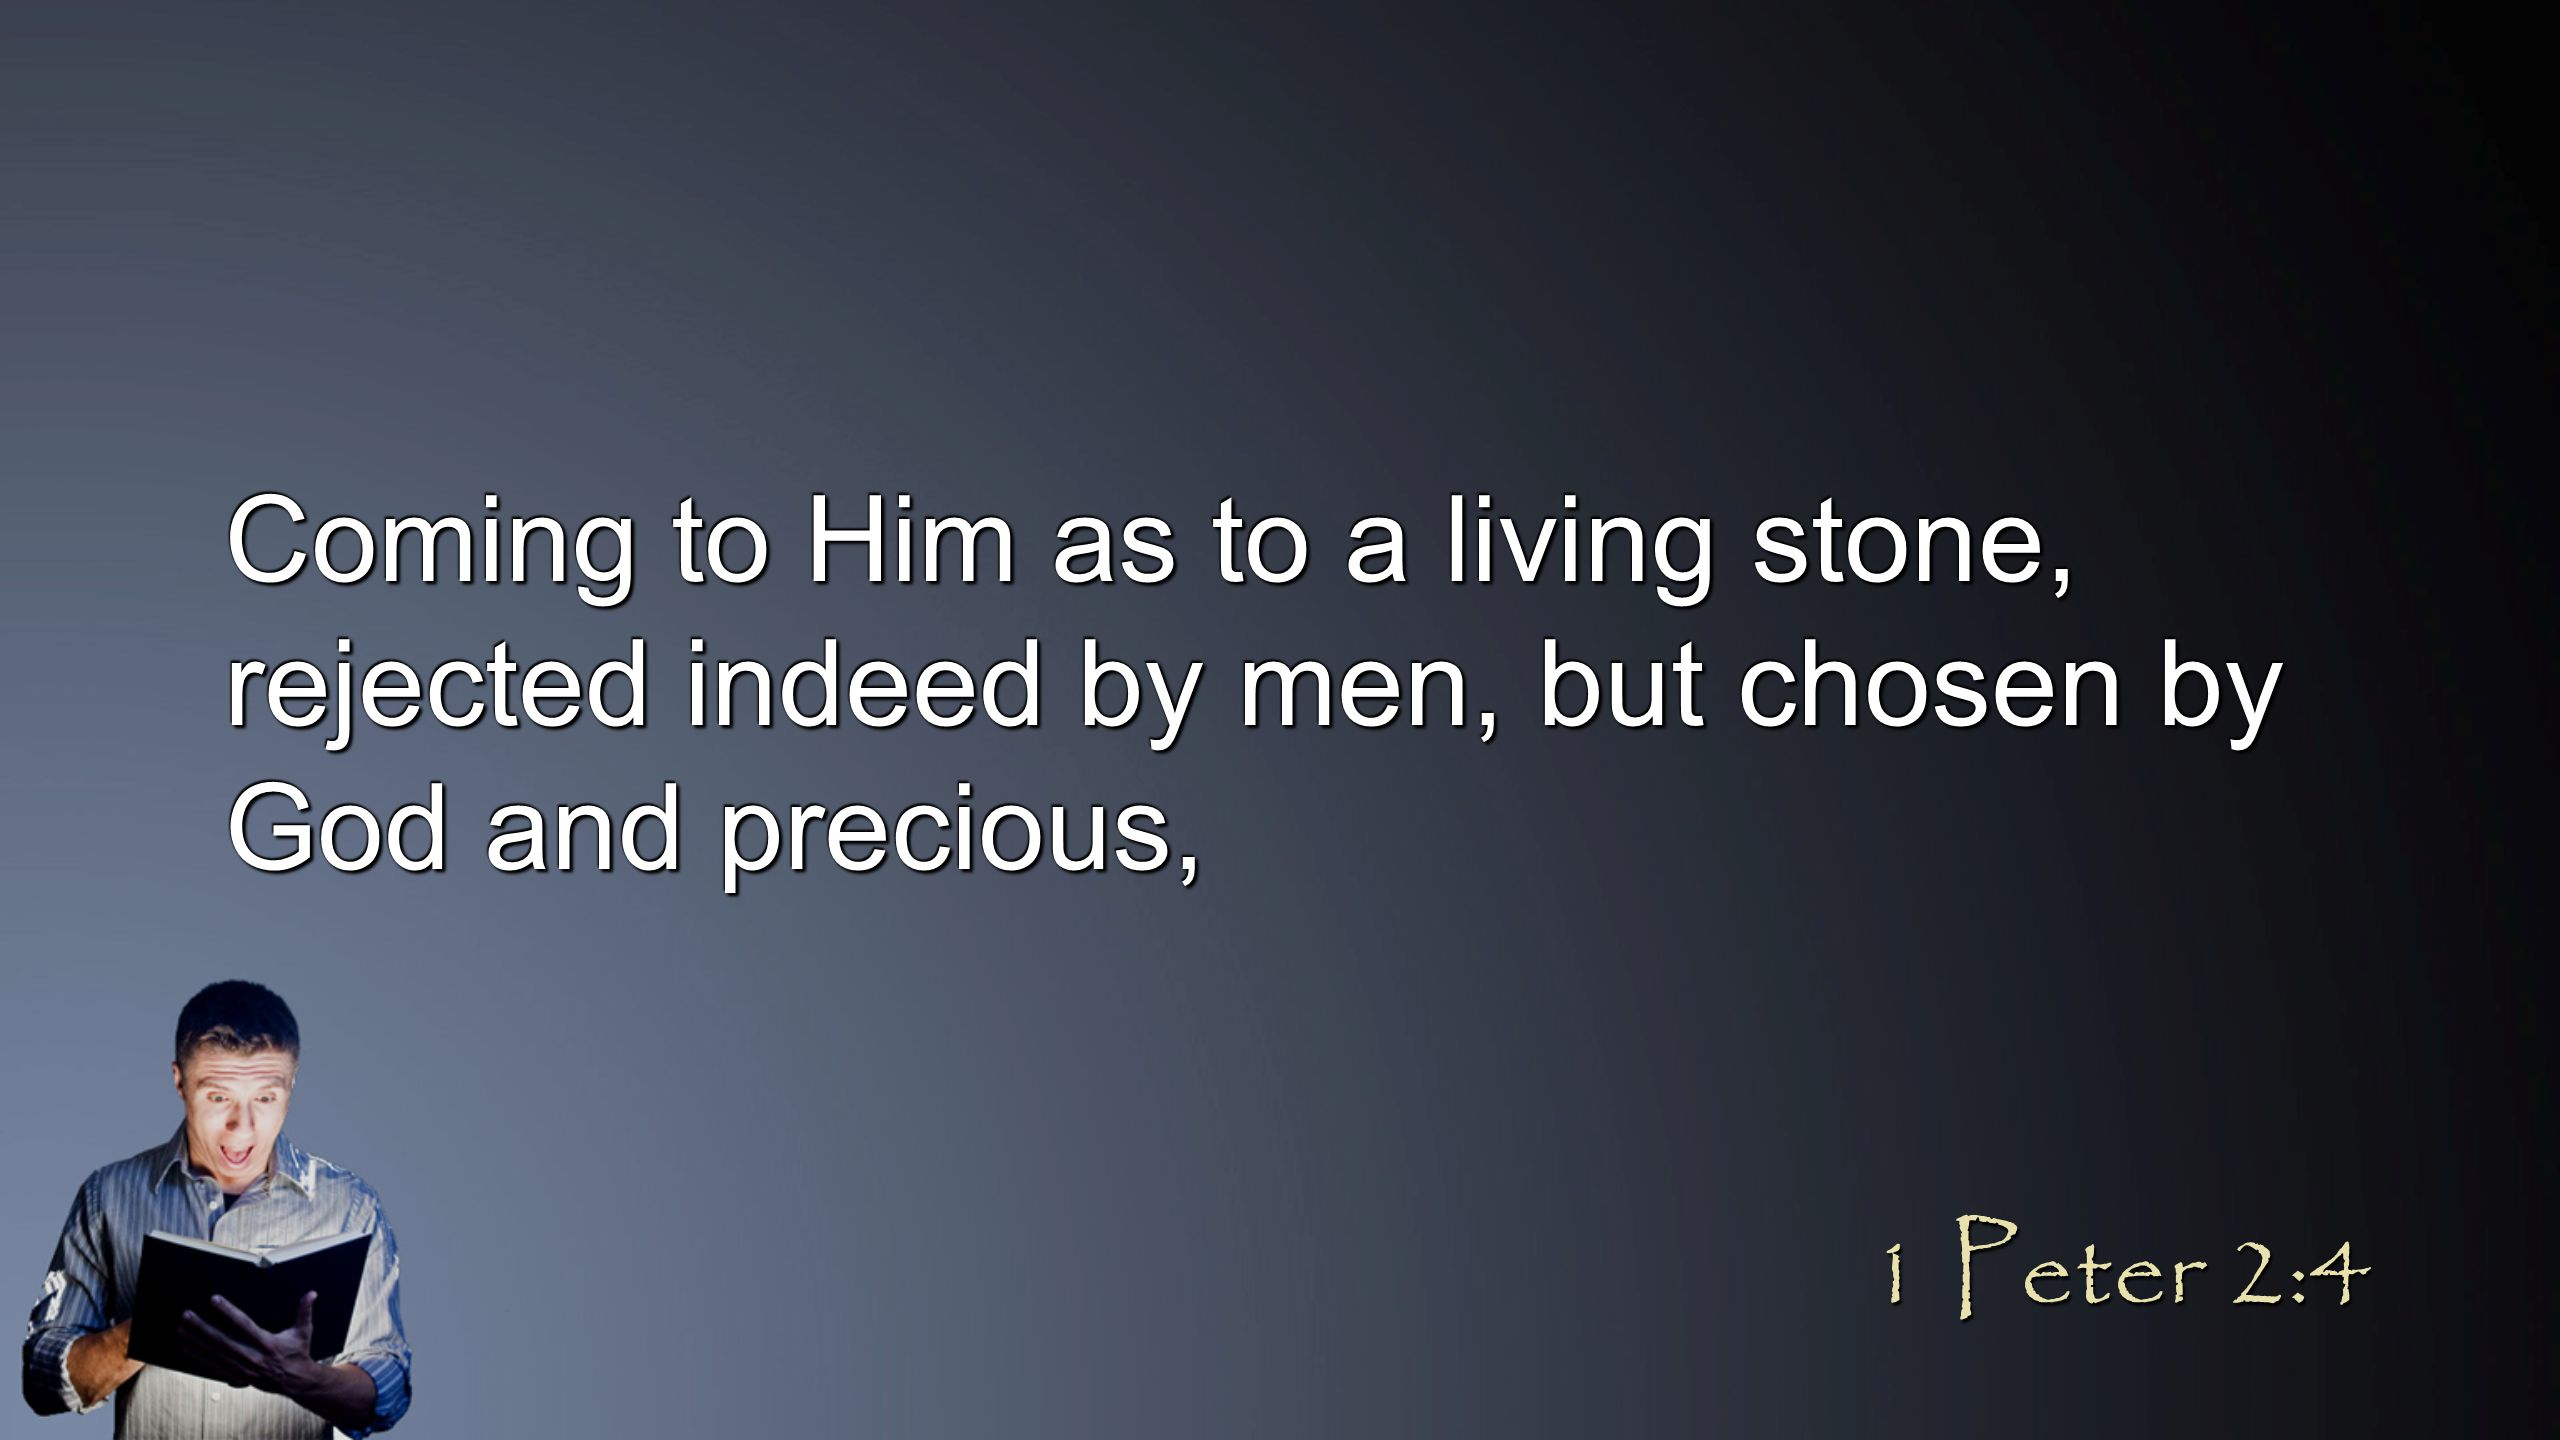 Coming to Him as to a living stone, rejected indeed by men, but chosen by God and precious, 1 Peter 2:4